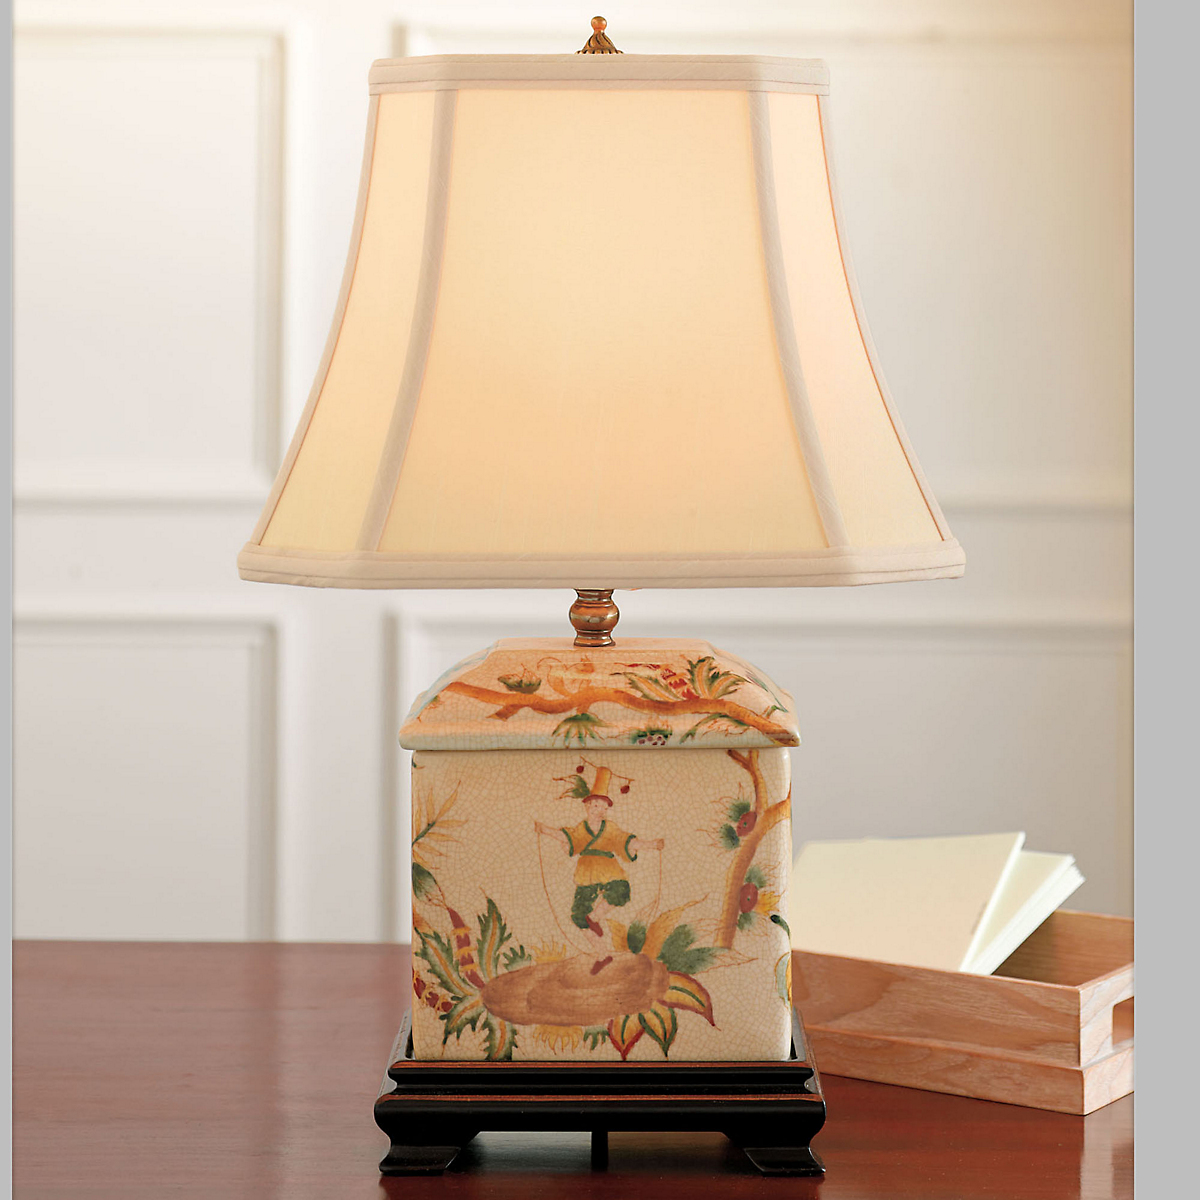 Tea Caddy Lamp